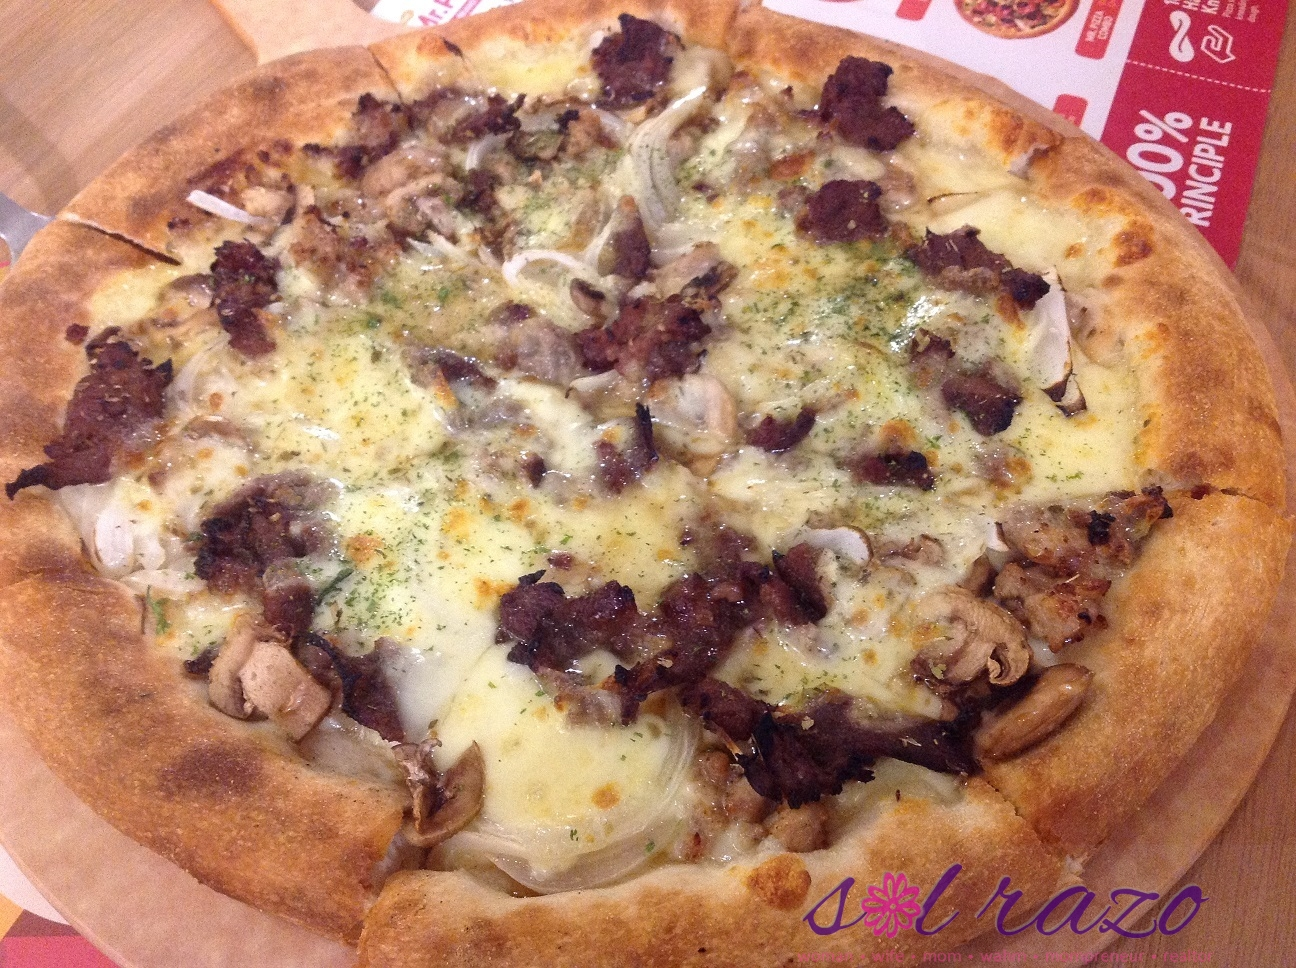 Mr. Pizza: Bulgogi